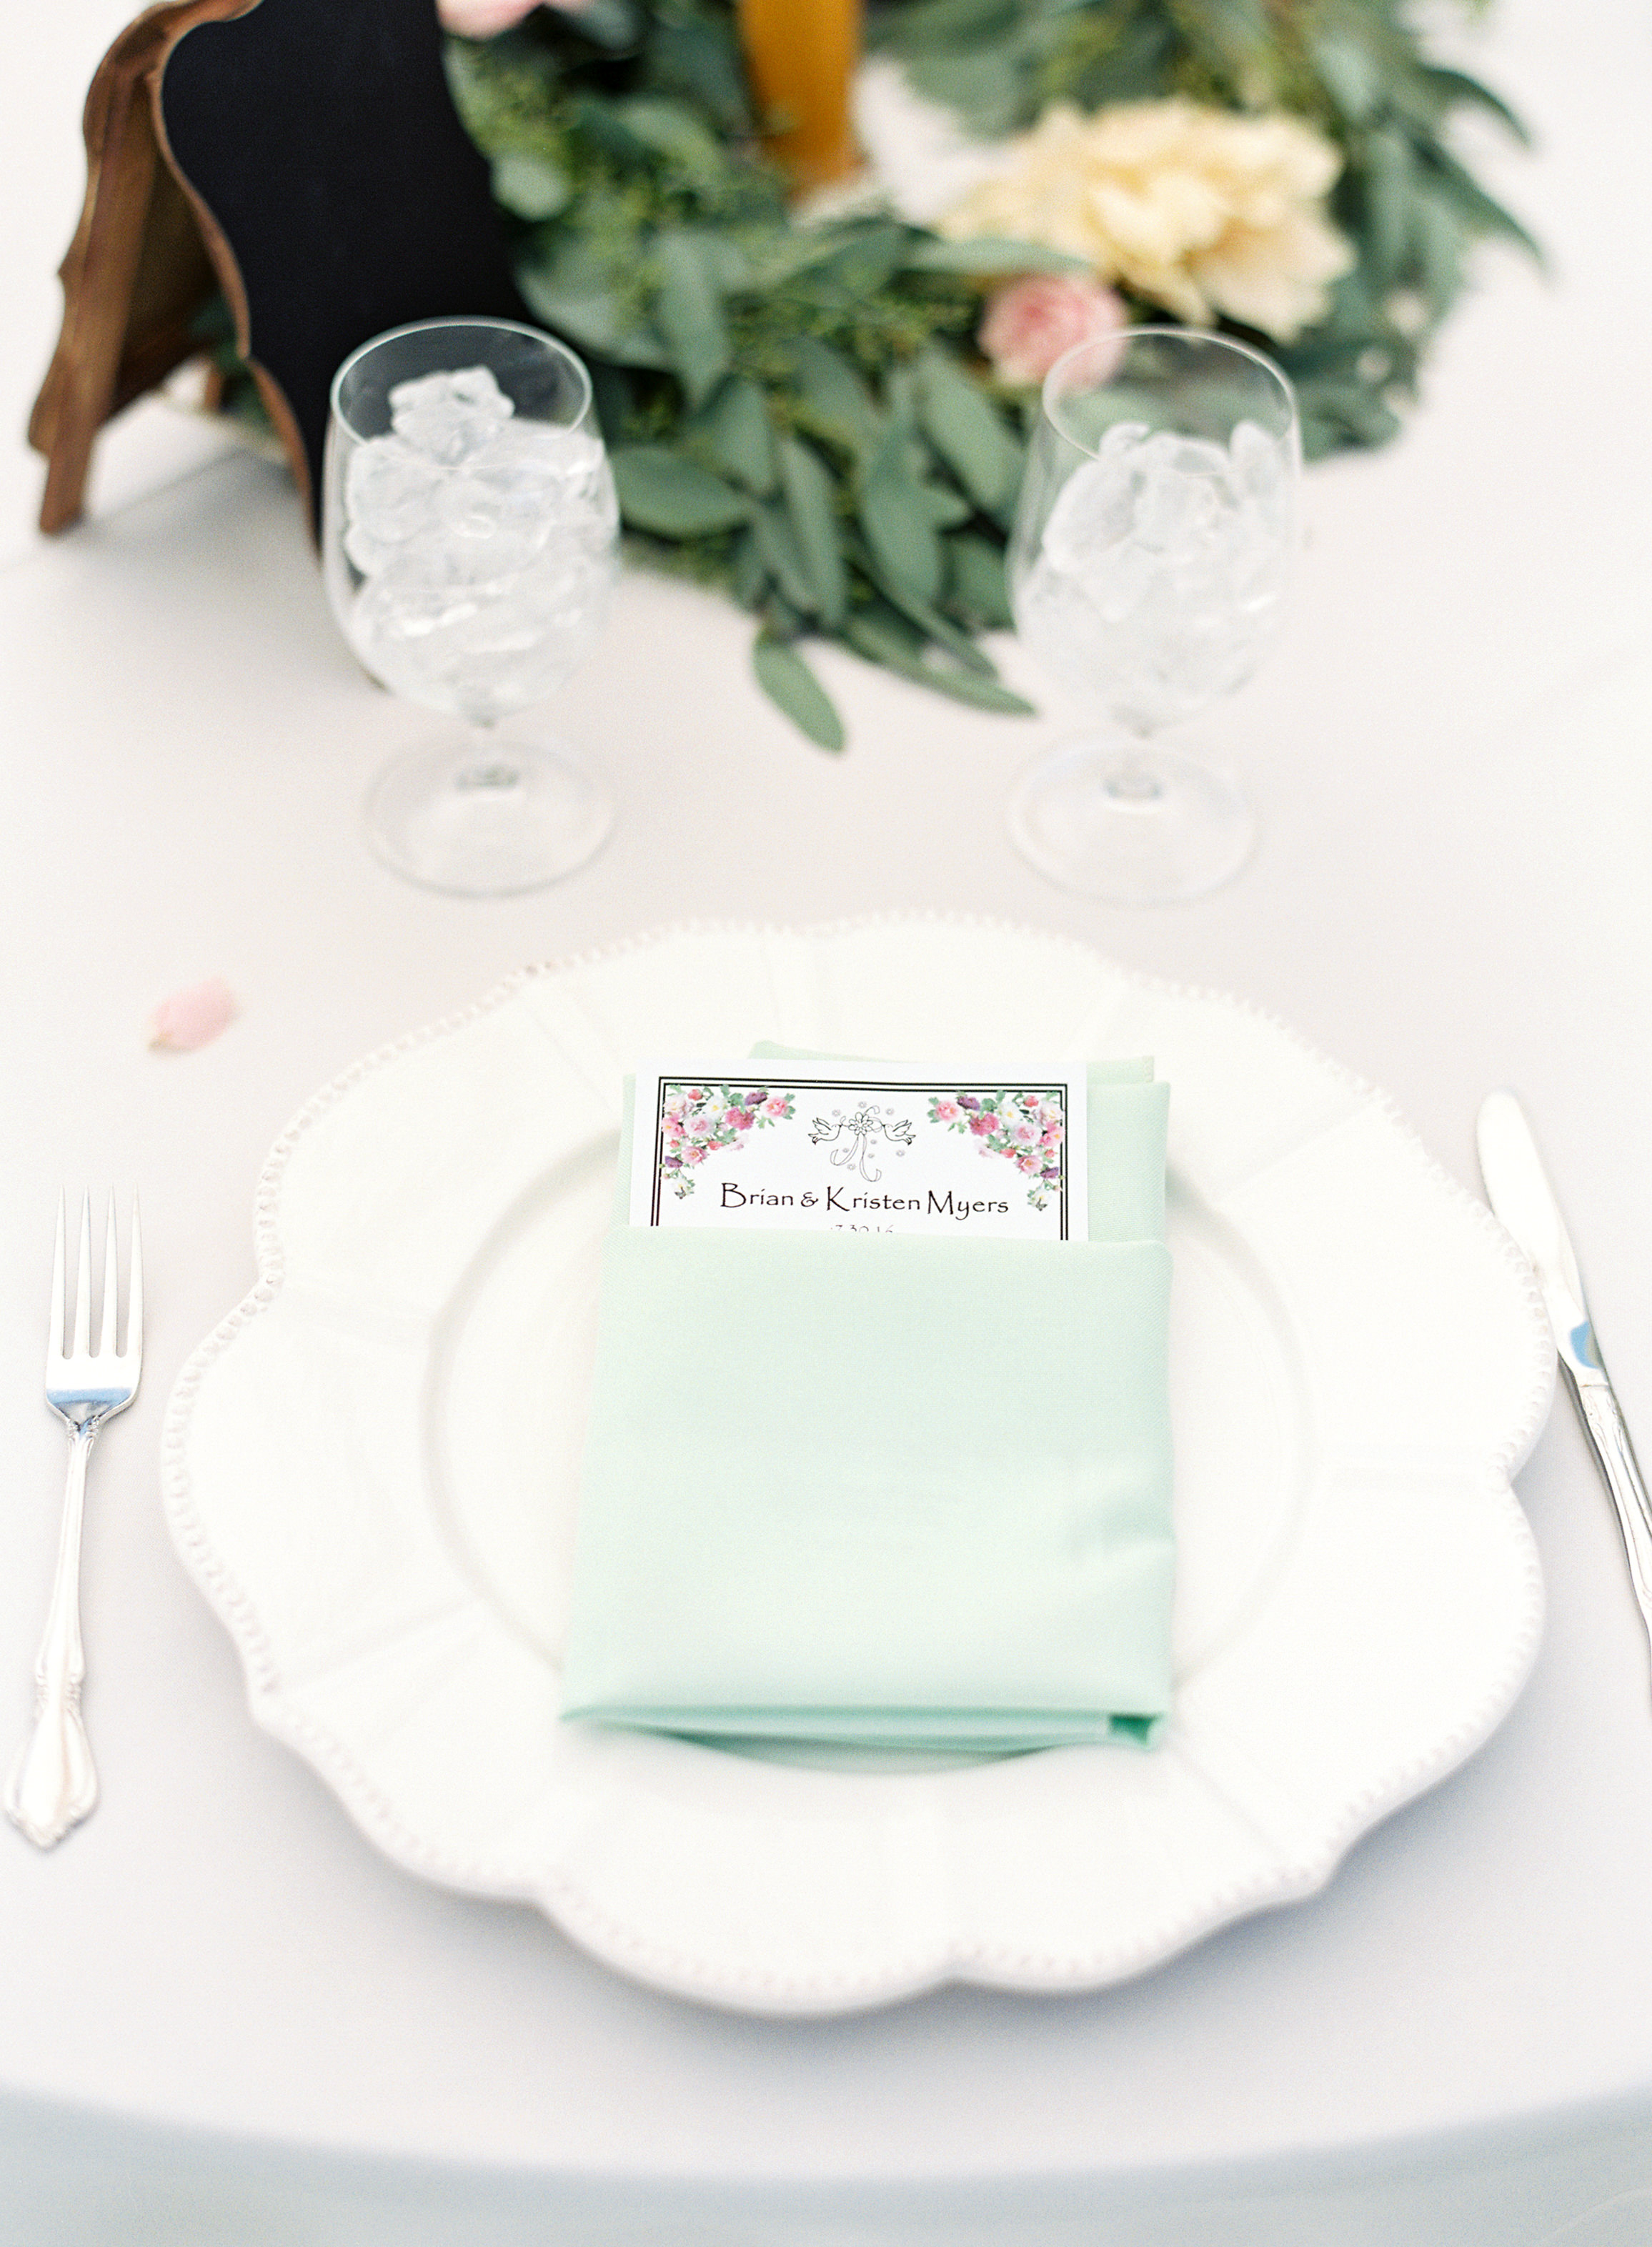 southern-inspired-wedding-at-ravenswood-historic-site-016-3.jpg